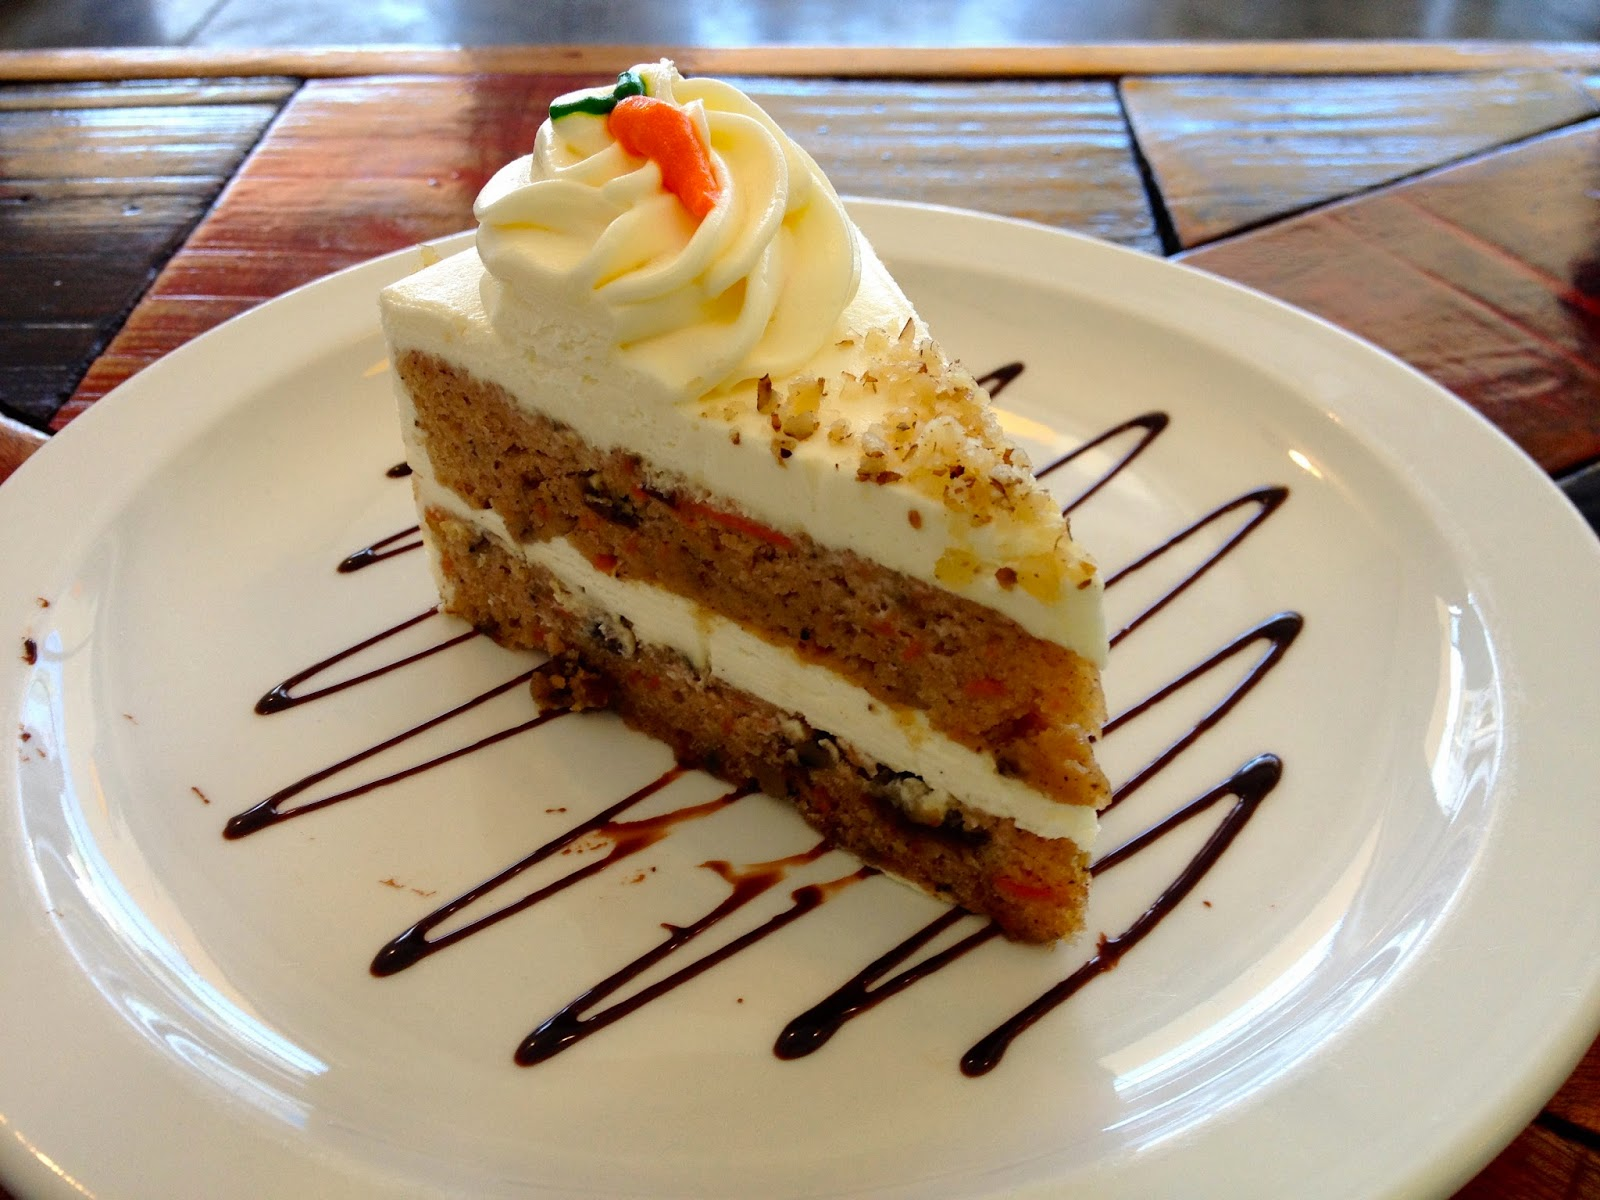 Yummy Carrot Cake at Tazza Cafe and Patisserie Lahug